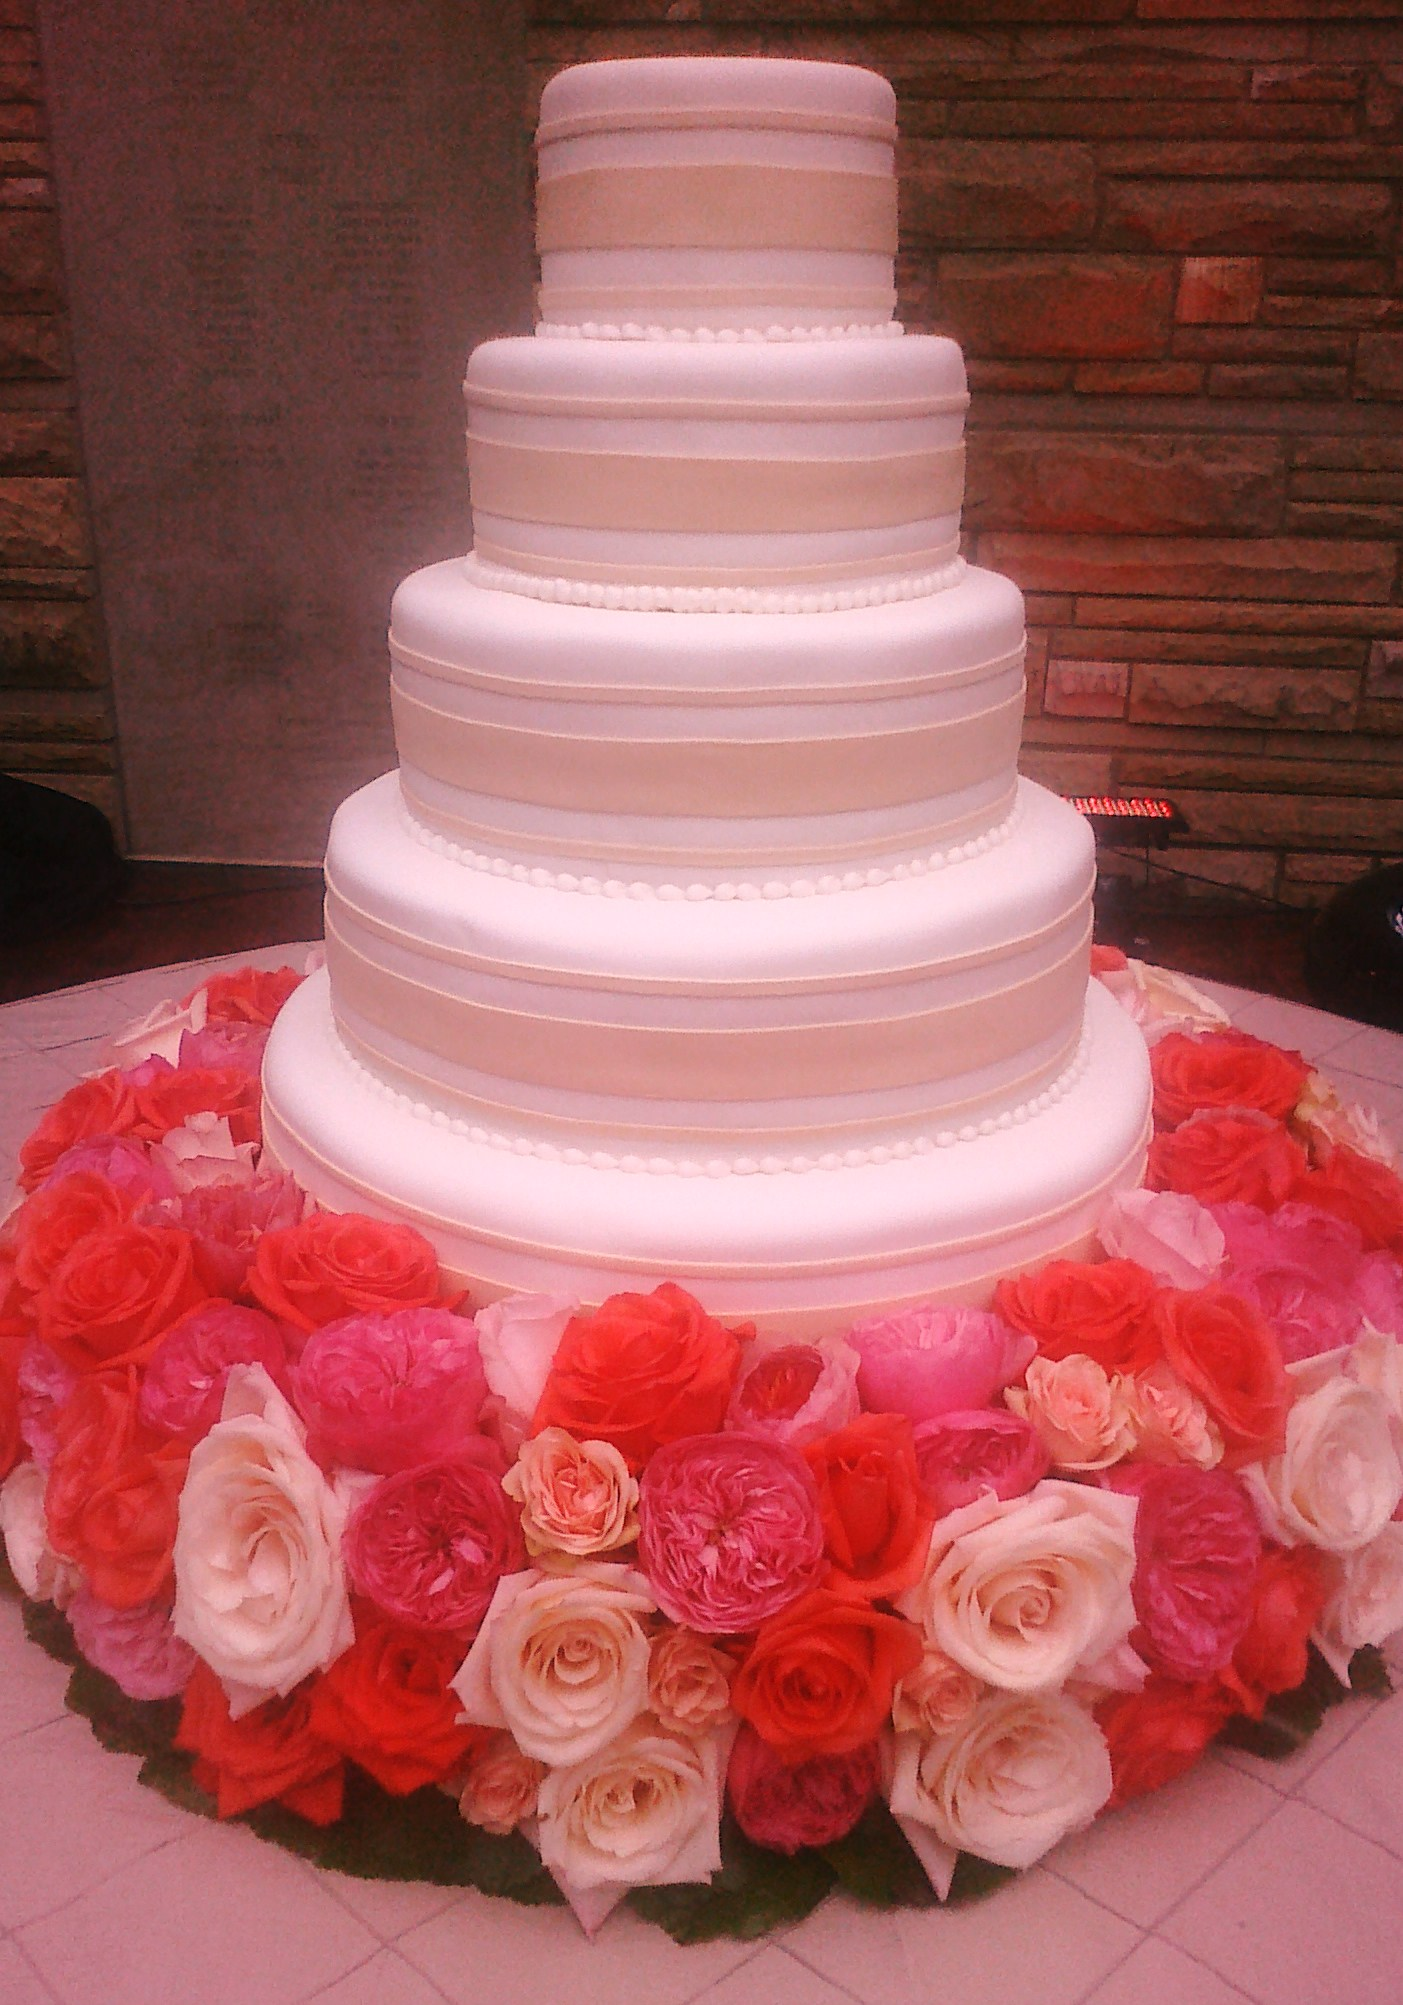 Maples Wedding Cakes Nashville Tennessee Couture Baker